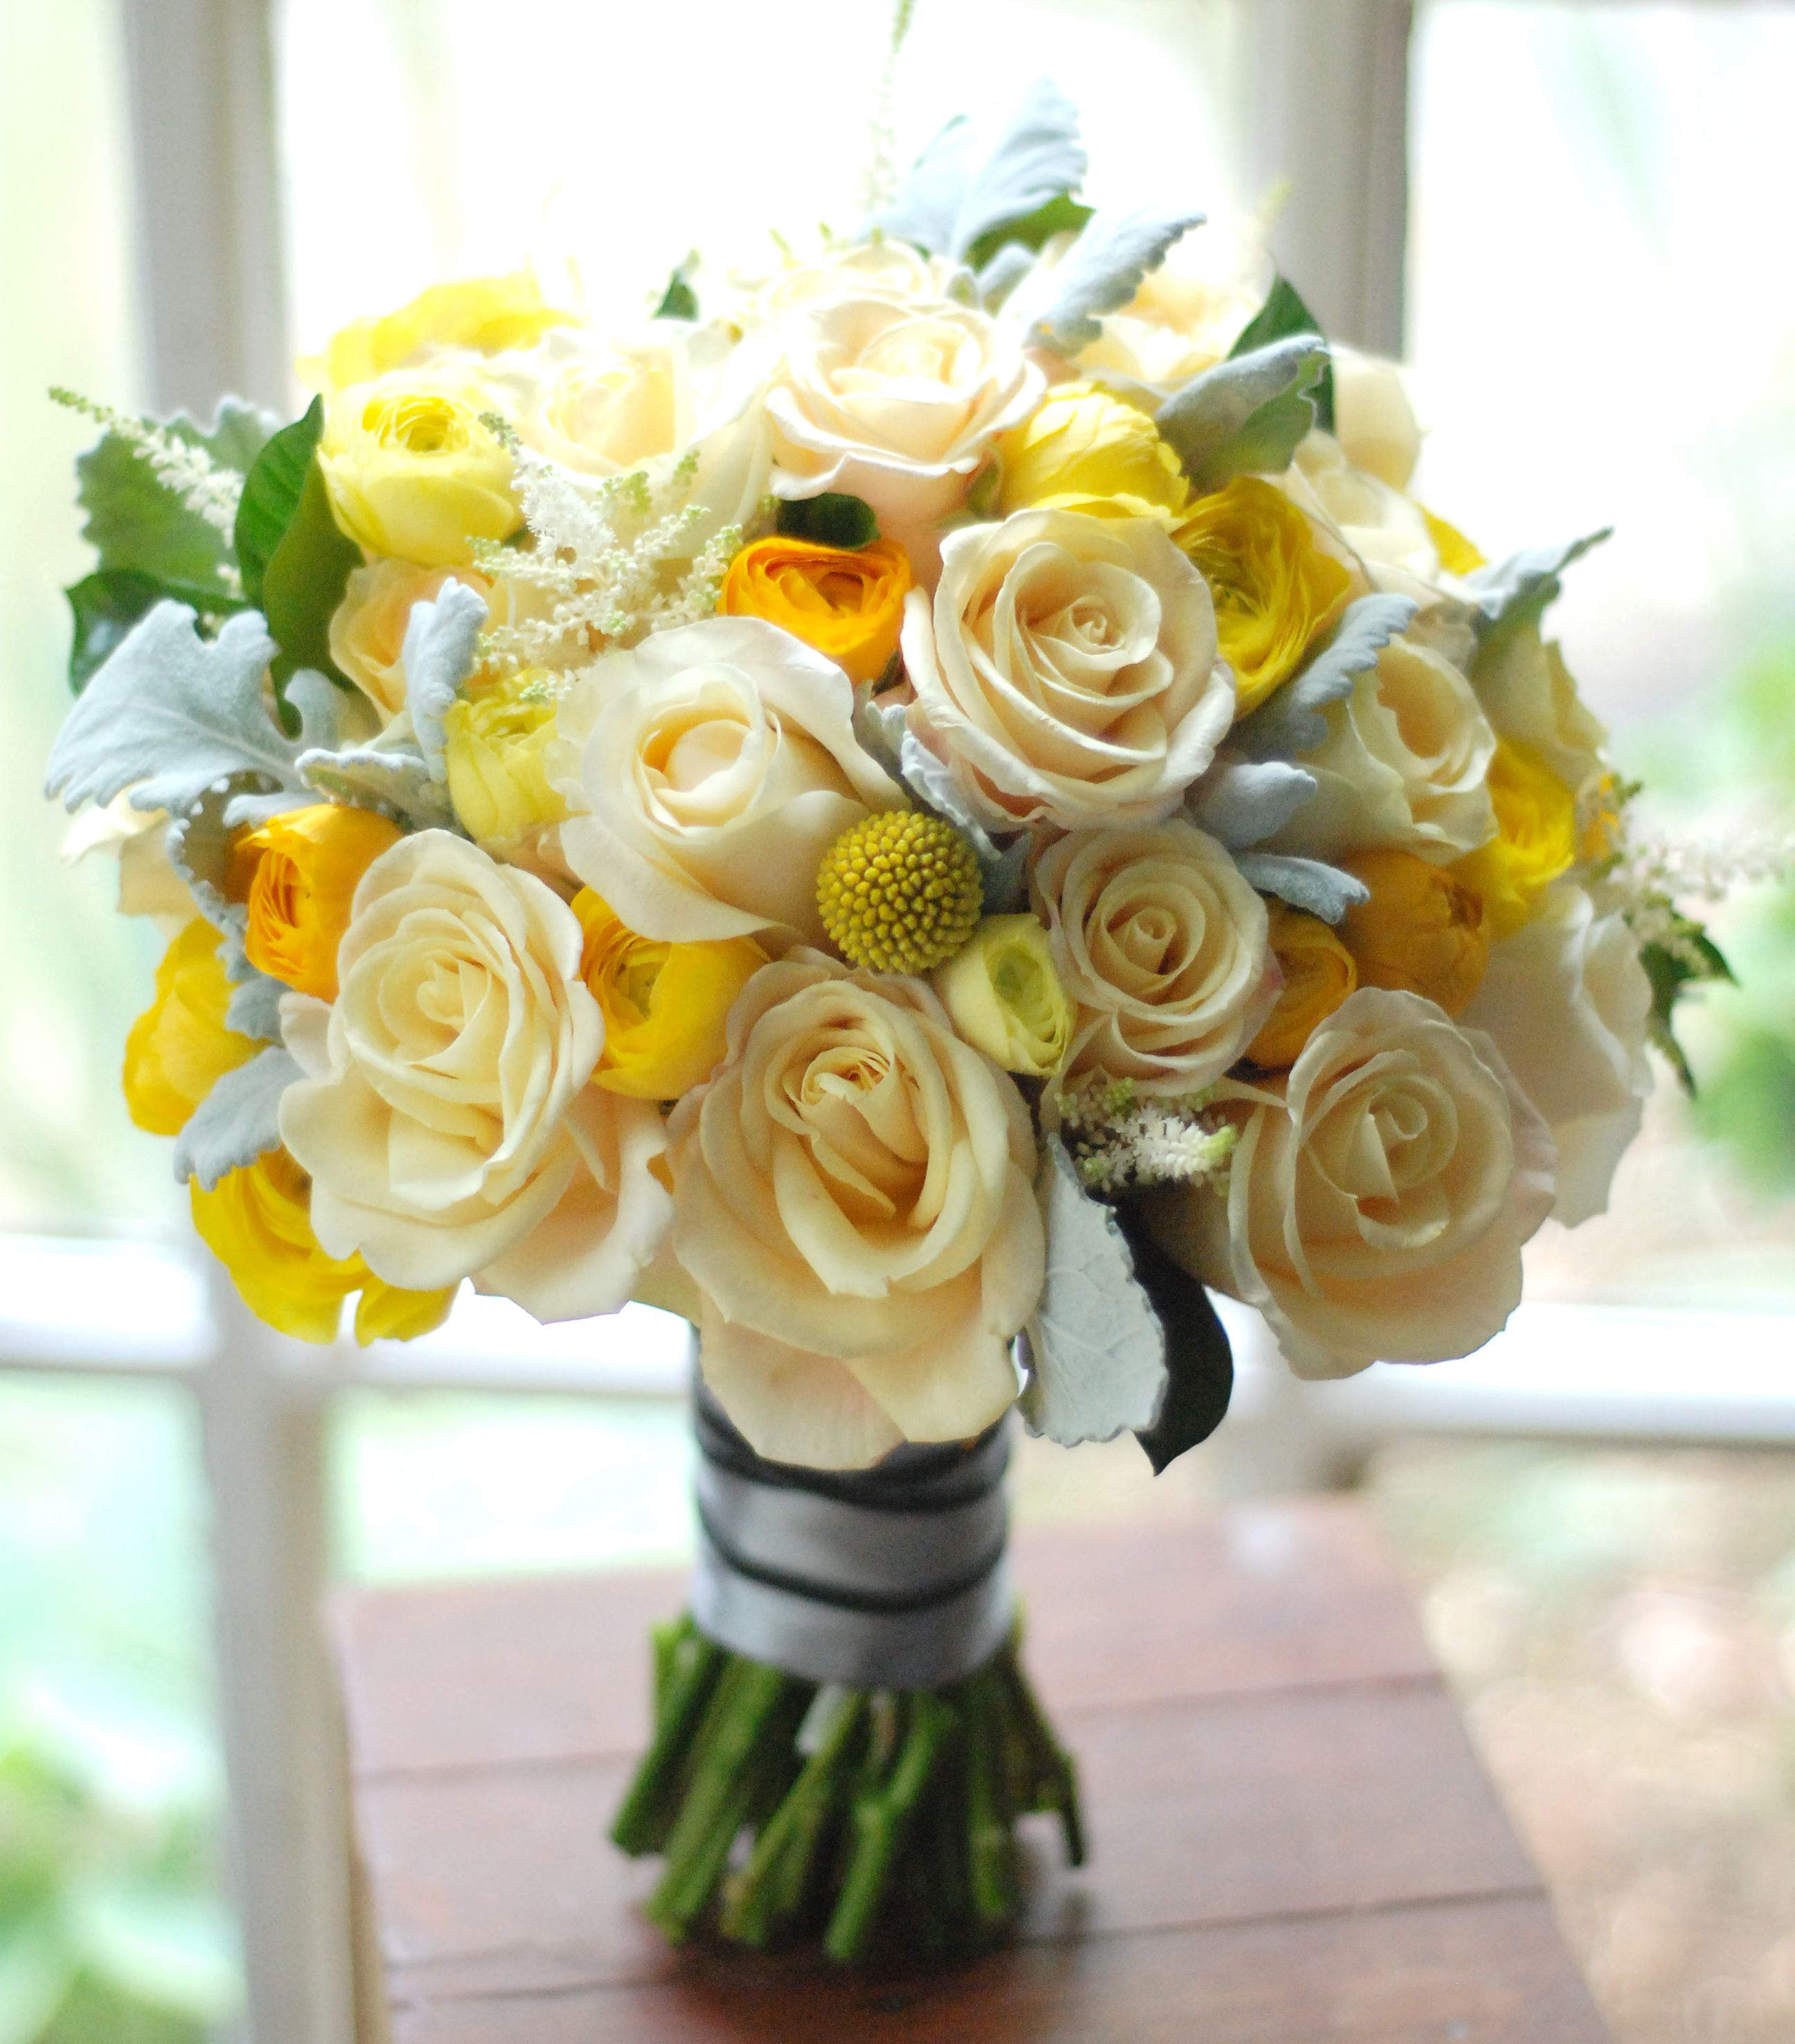 Very Similar Shapesize To Bridal Bouquet Replace Some Of The Roses